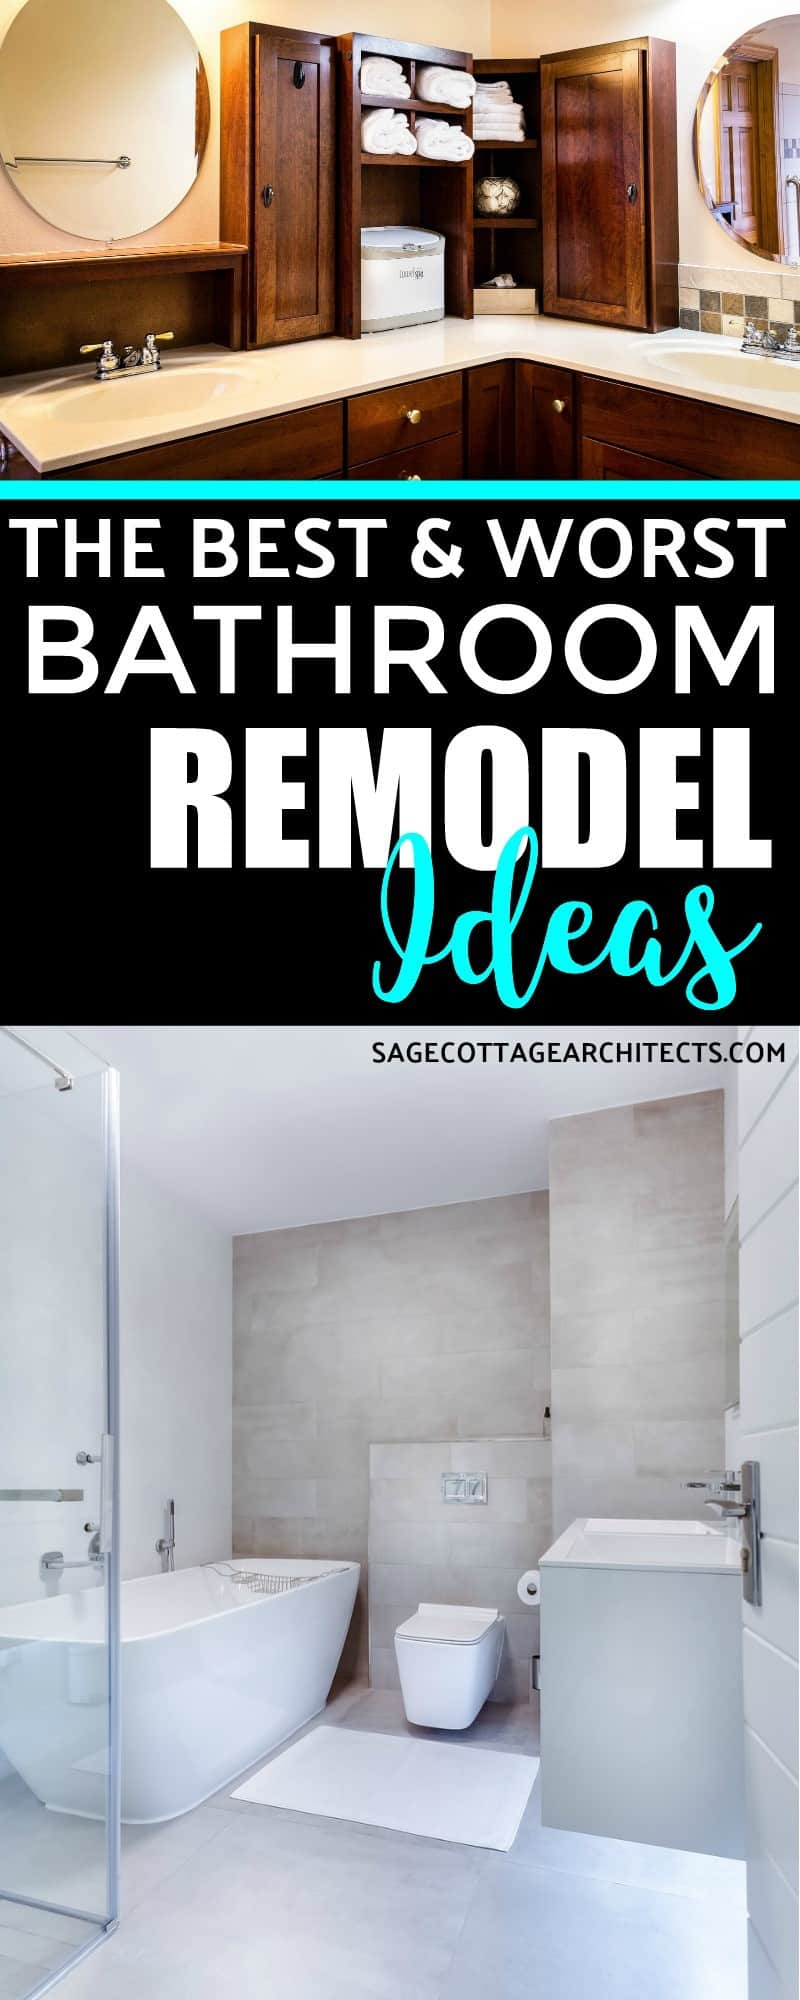 "Photo collage with the text ""The Best & Worst Bathroom Remodel Ideas"" written on it"